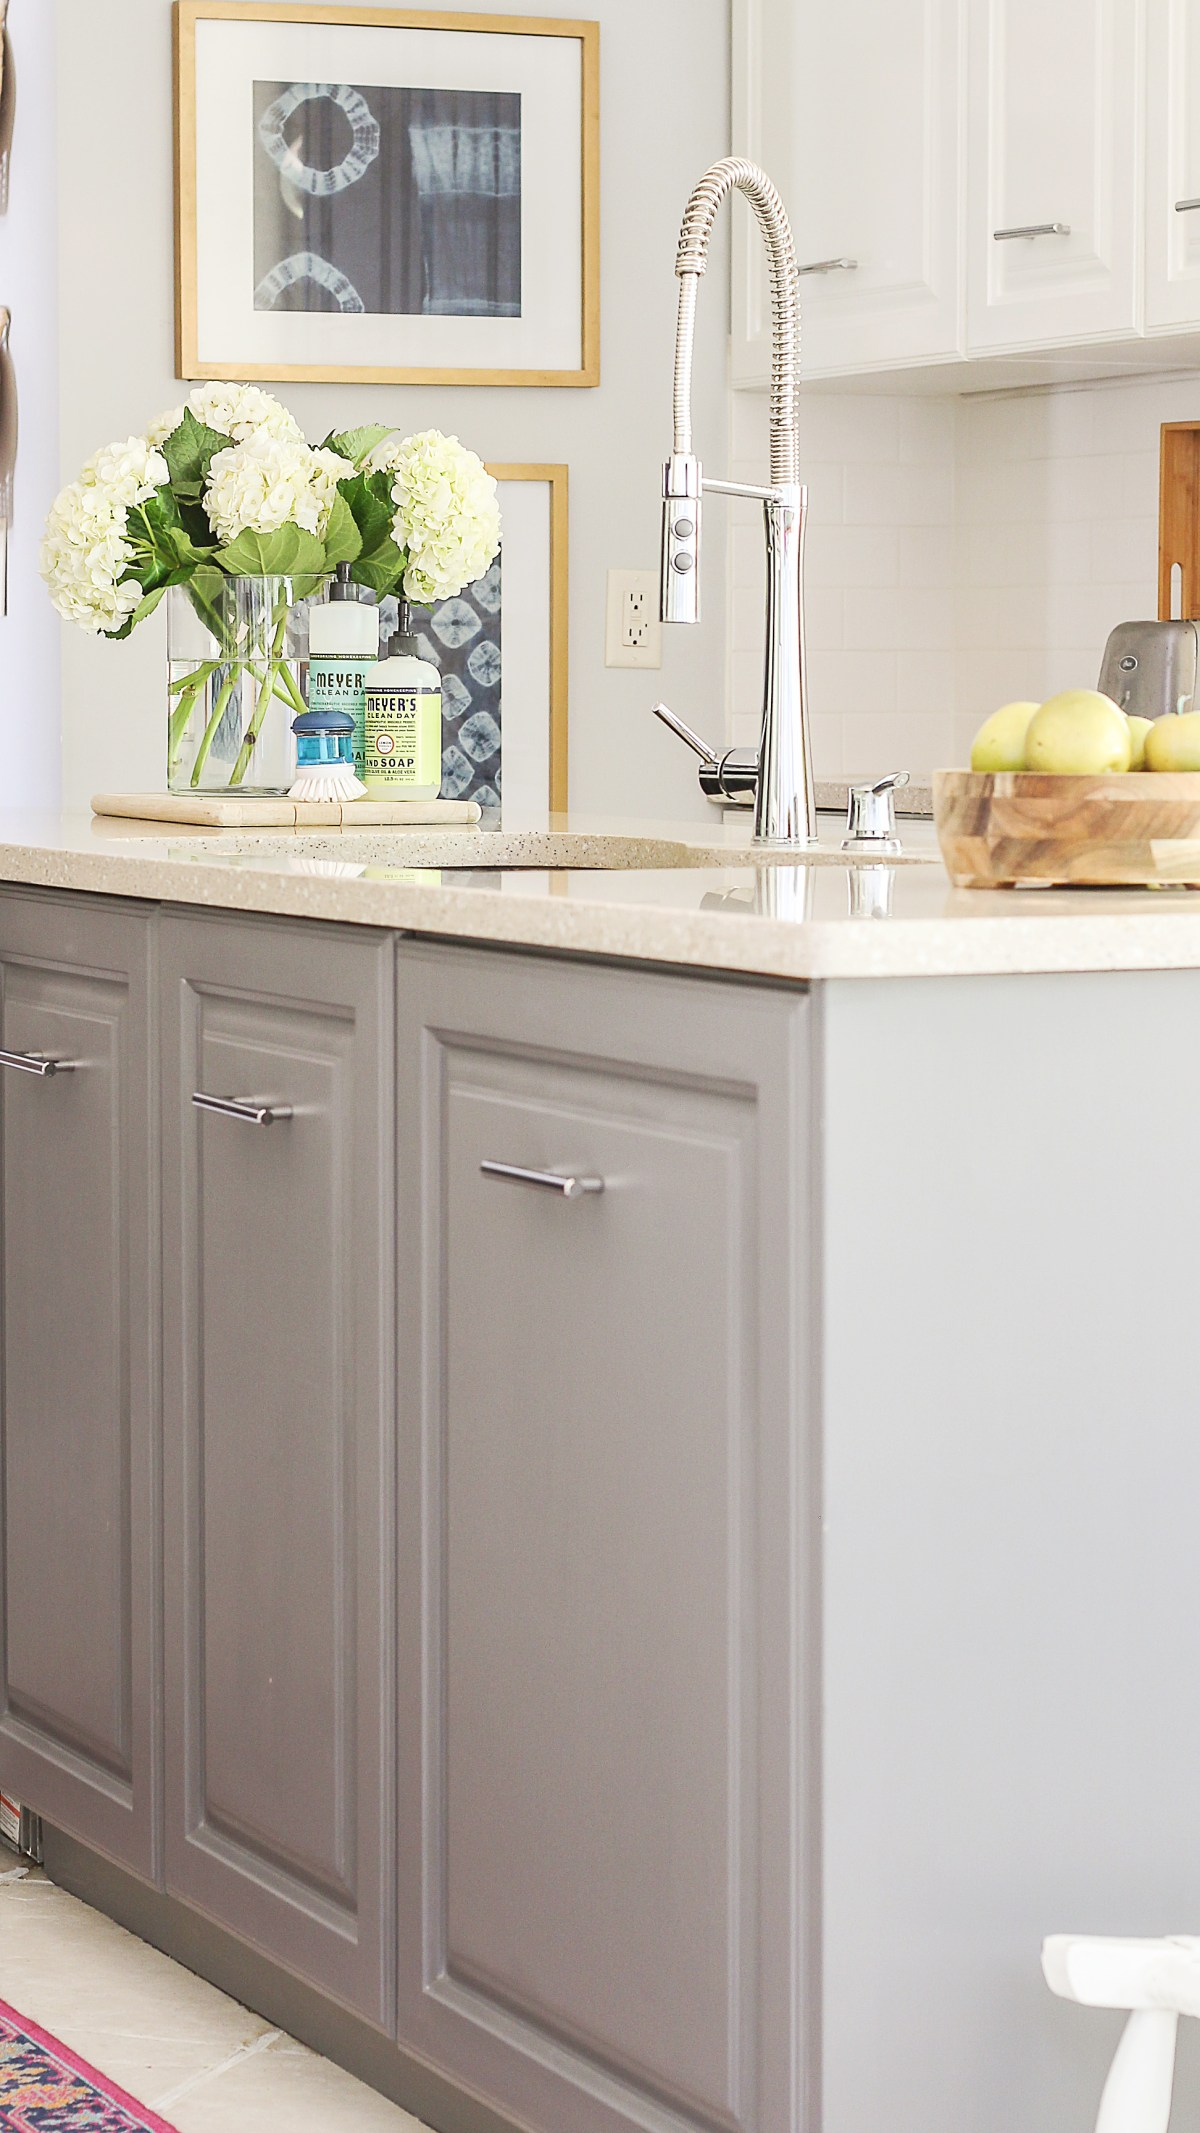 Fastest Way To Paint Kitchen Cabinets The Ultimate Hack - What paint to use on kitchen cabinets